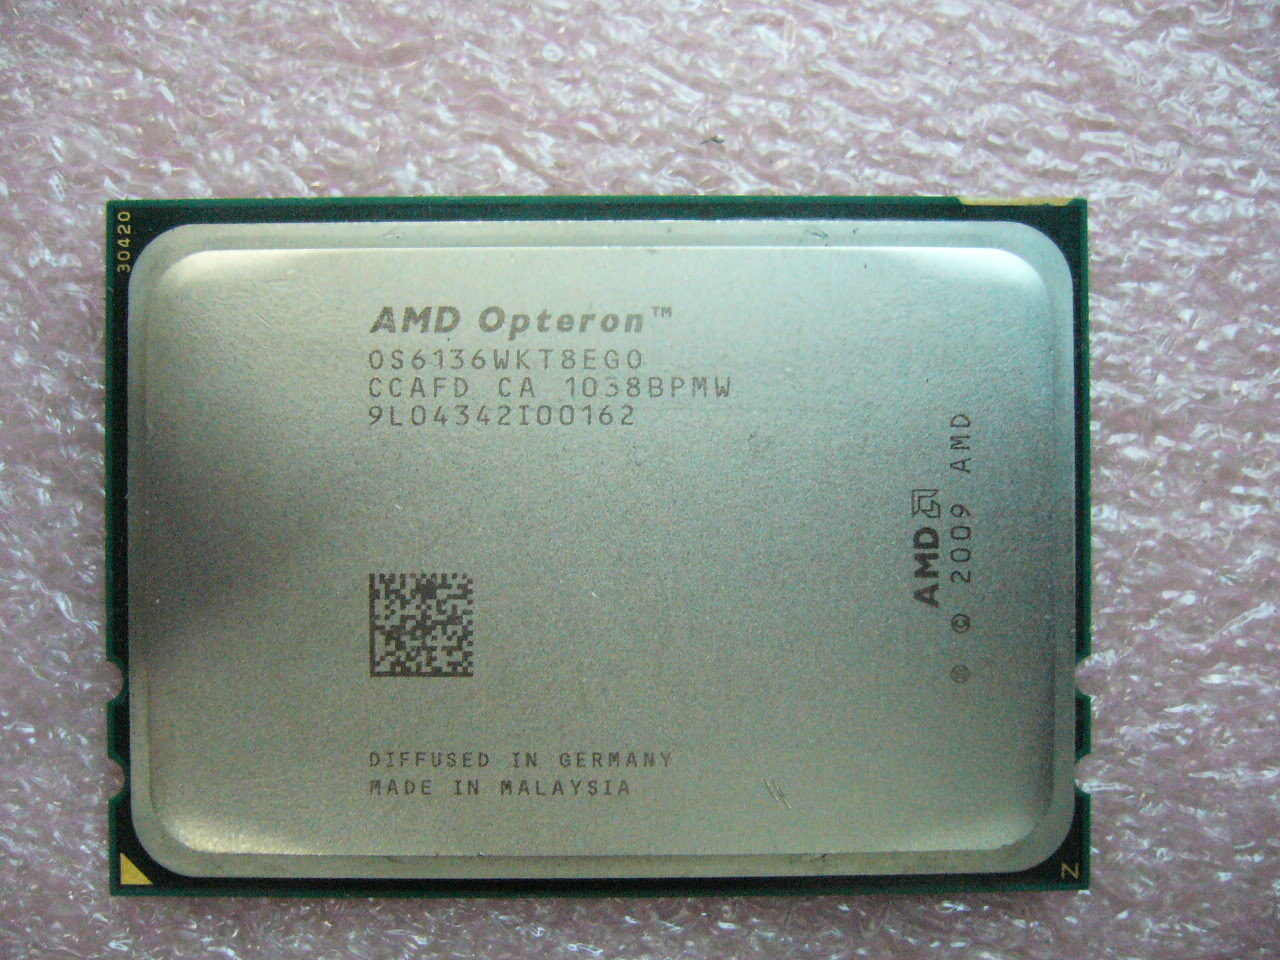 QTY 1x AMD Opteron 6136 2.4 GHz Eight Core (OS6136WKT8EGO CPU Tested G34